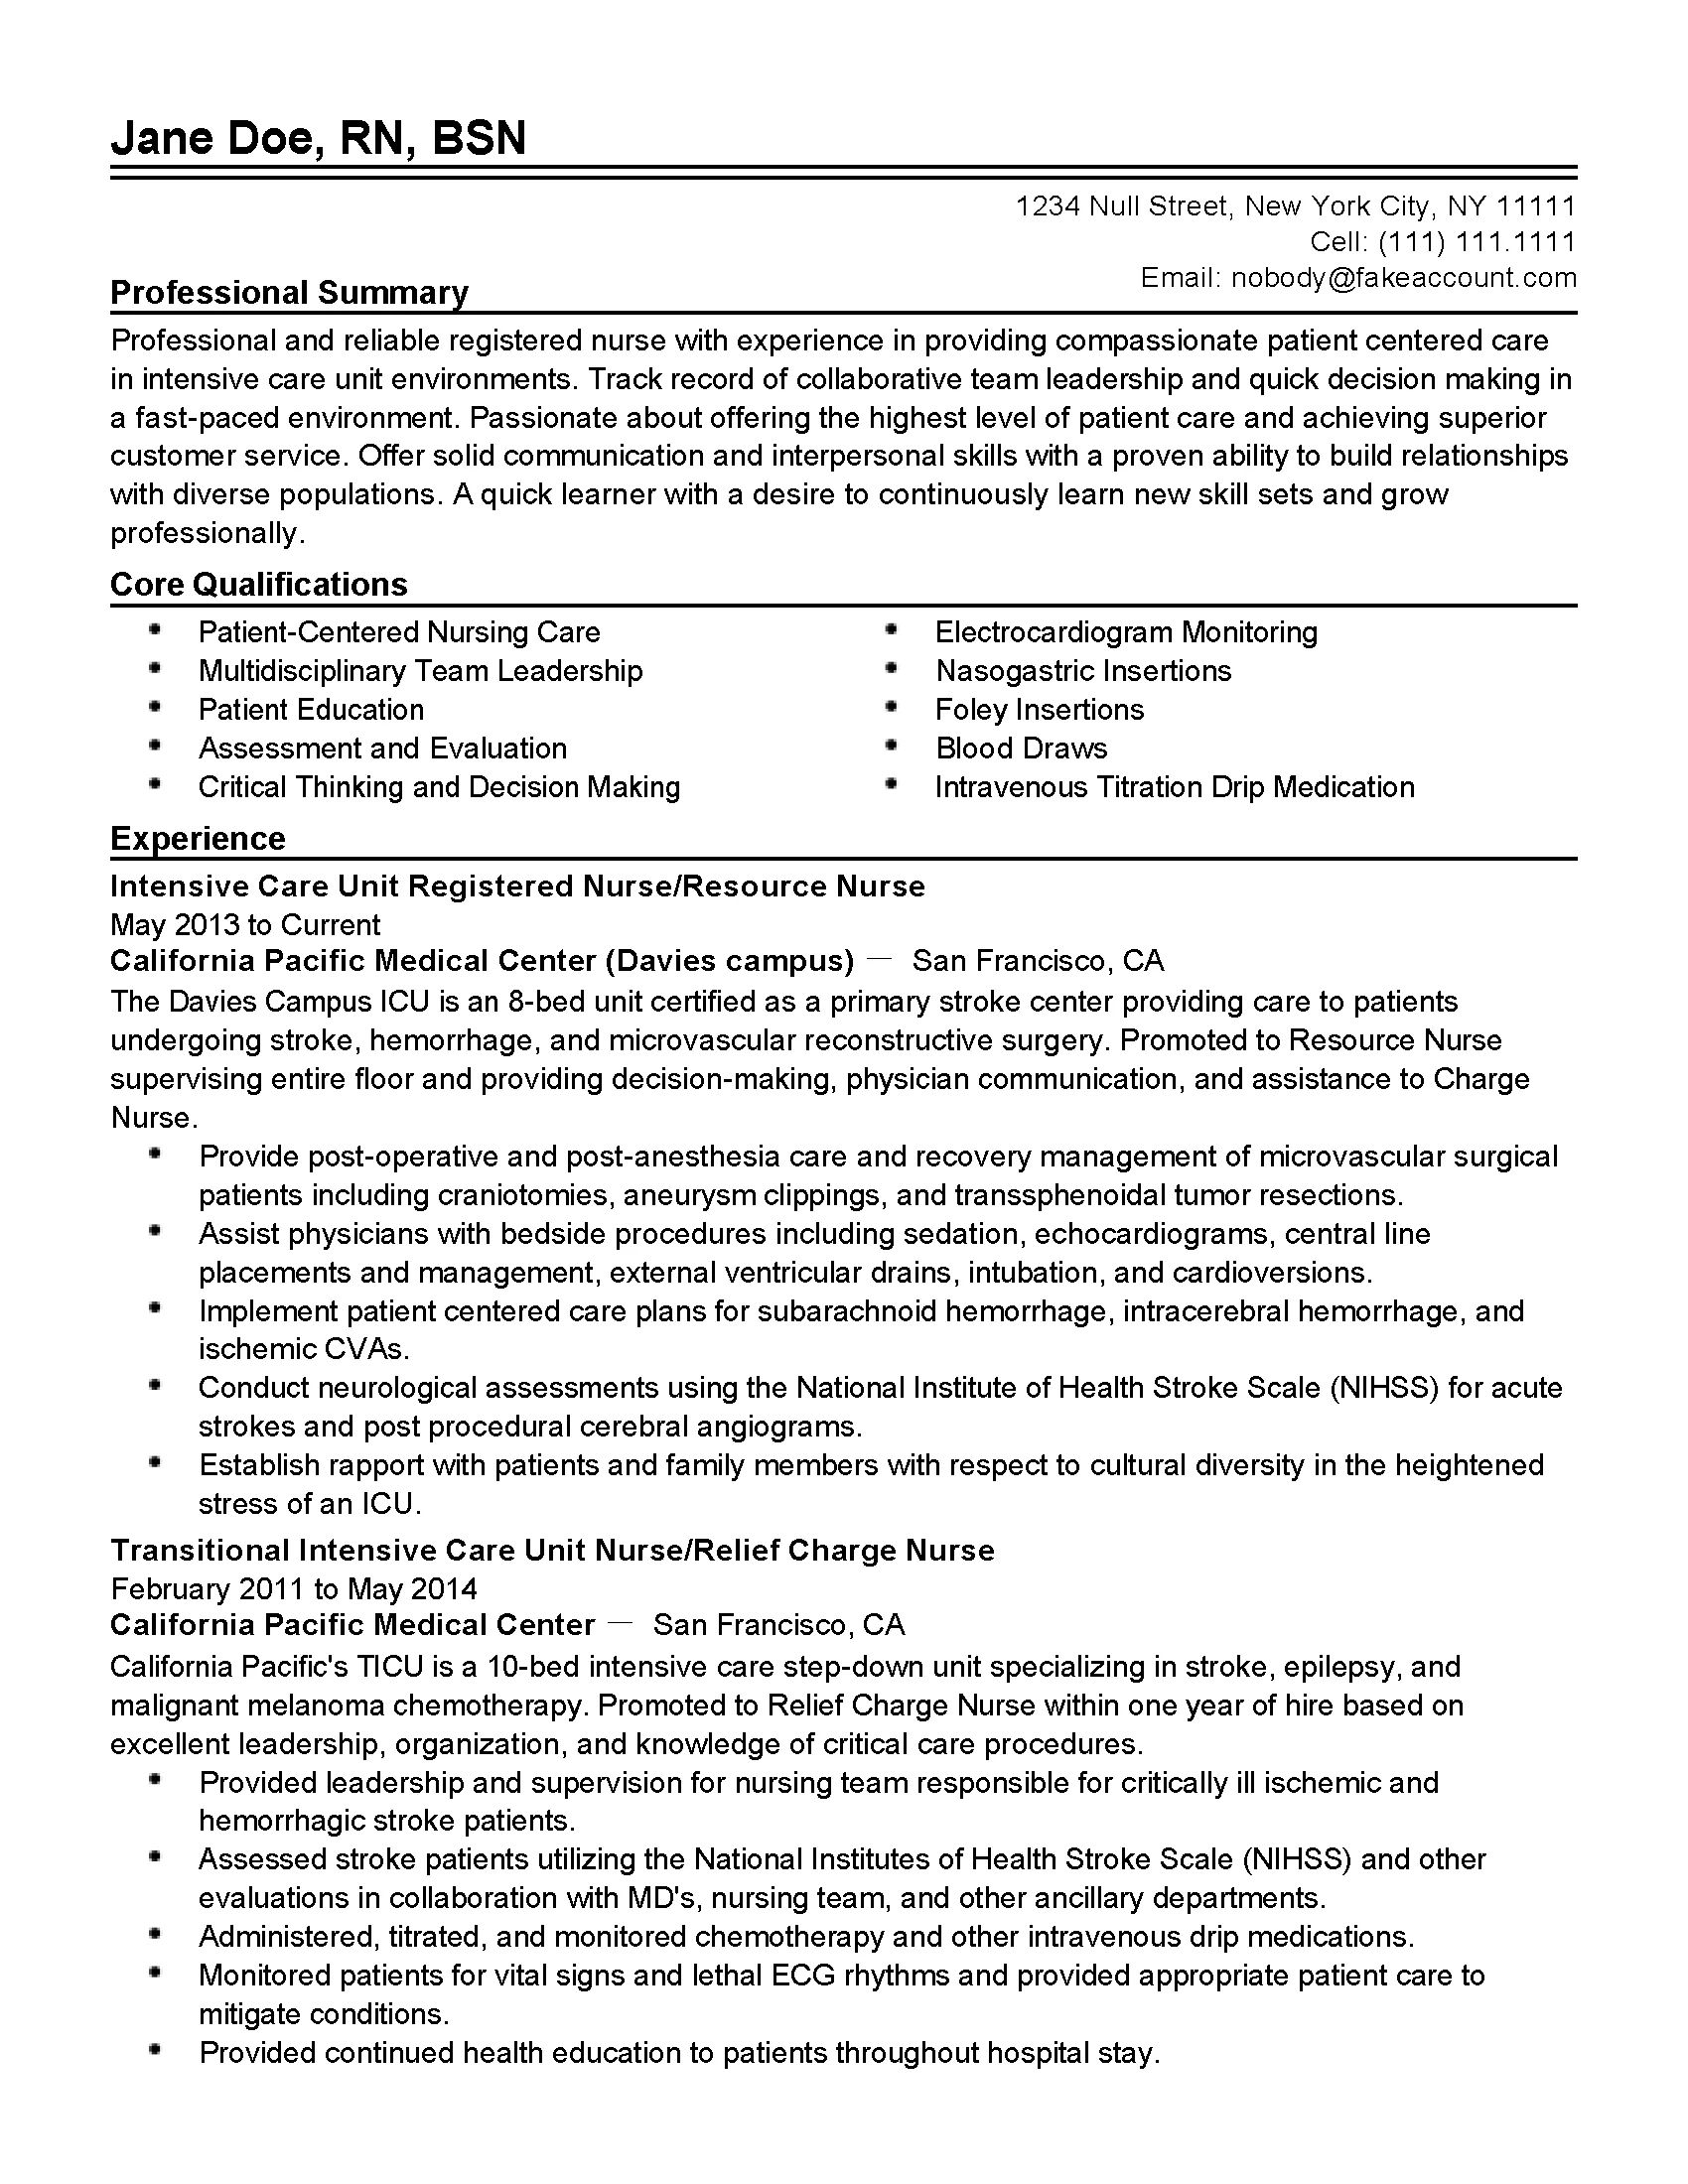 resume professional summary nurse